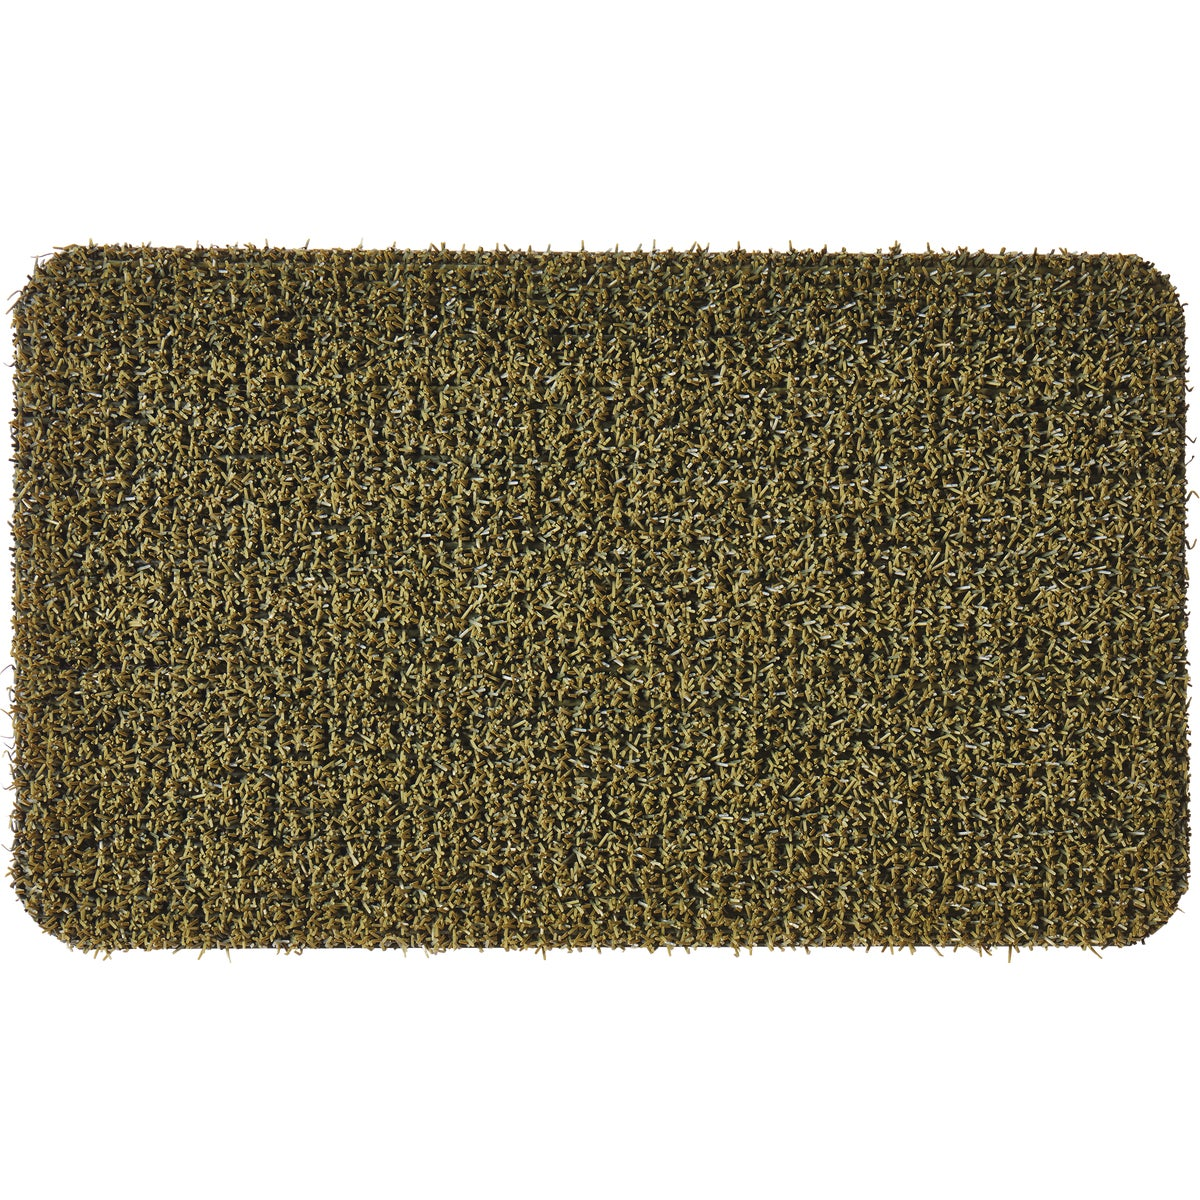 17.5X29.5 GREEN DOOR MAT